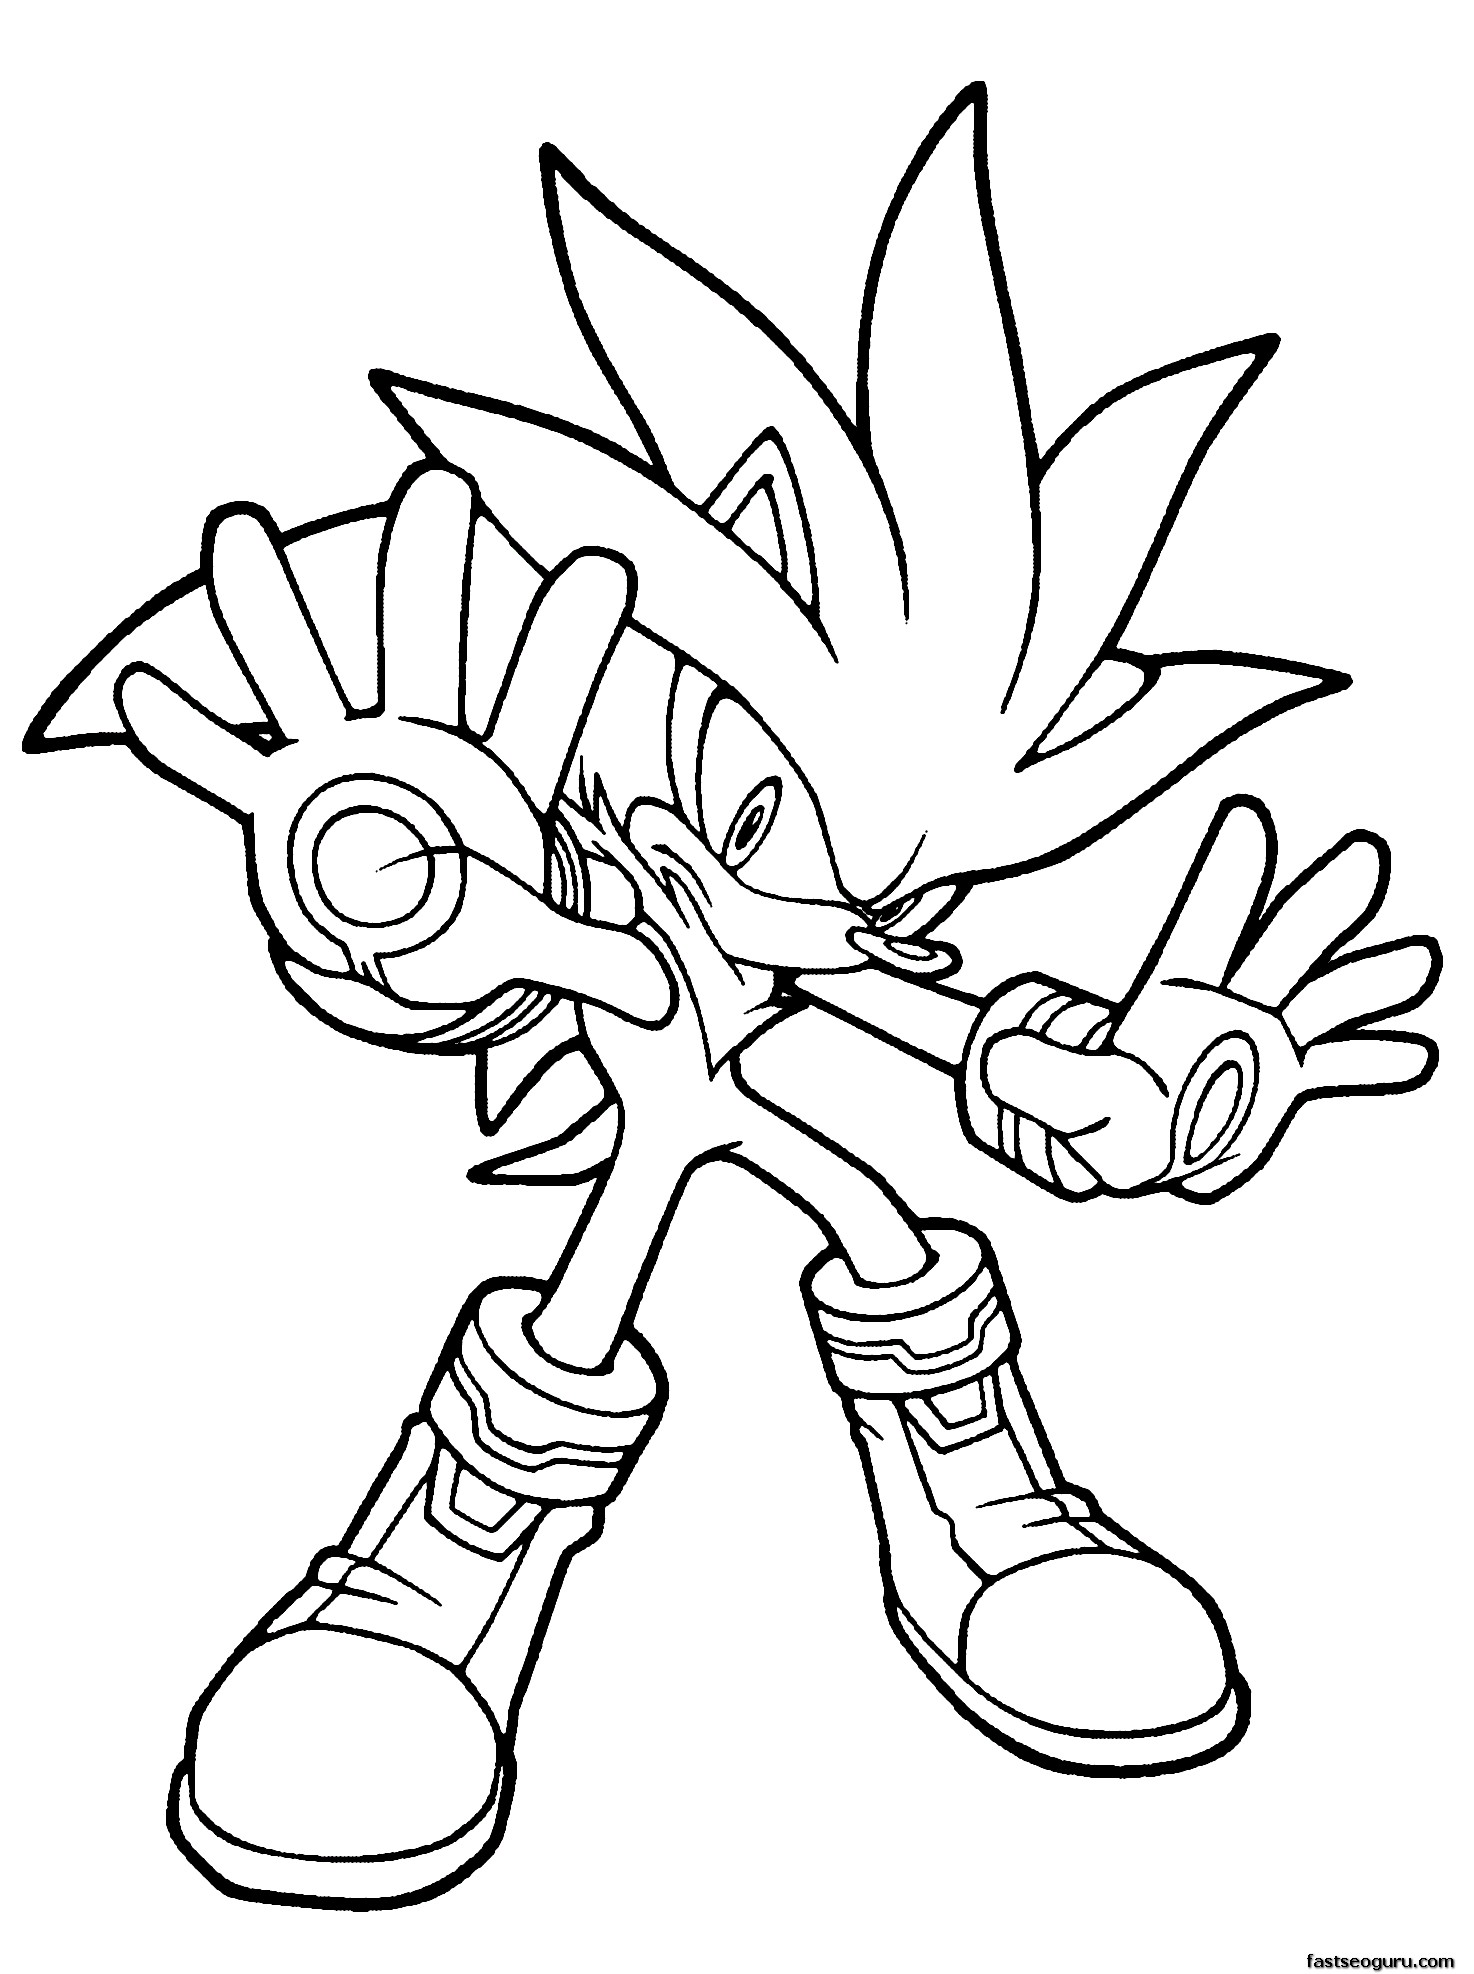 Free Sonic The Hedgehog 1 Coloring Pages